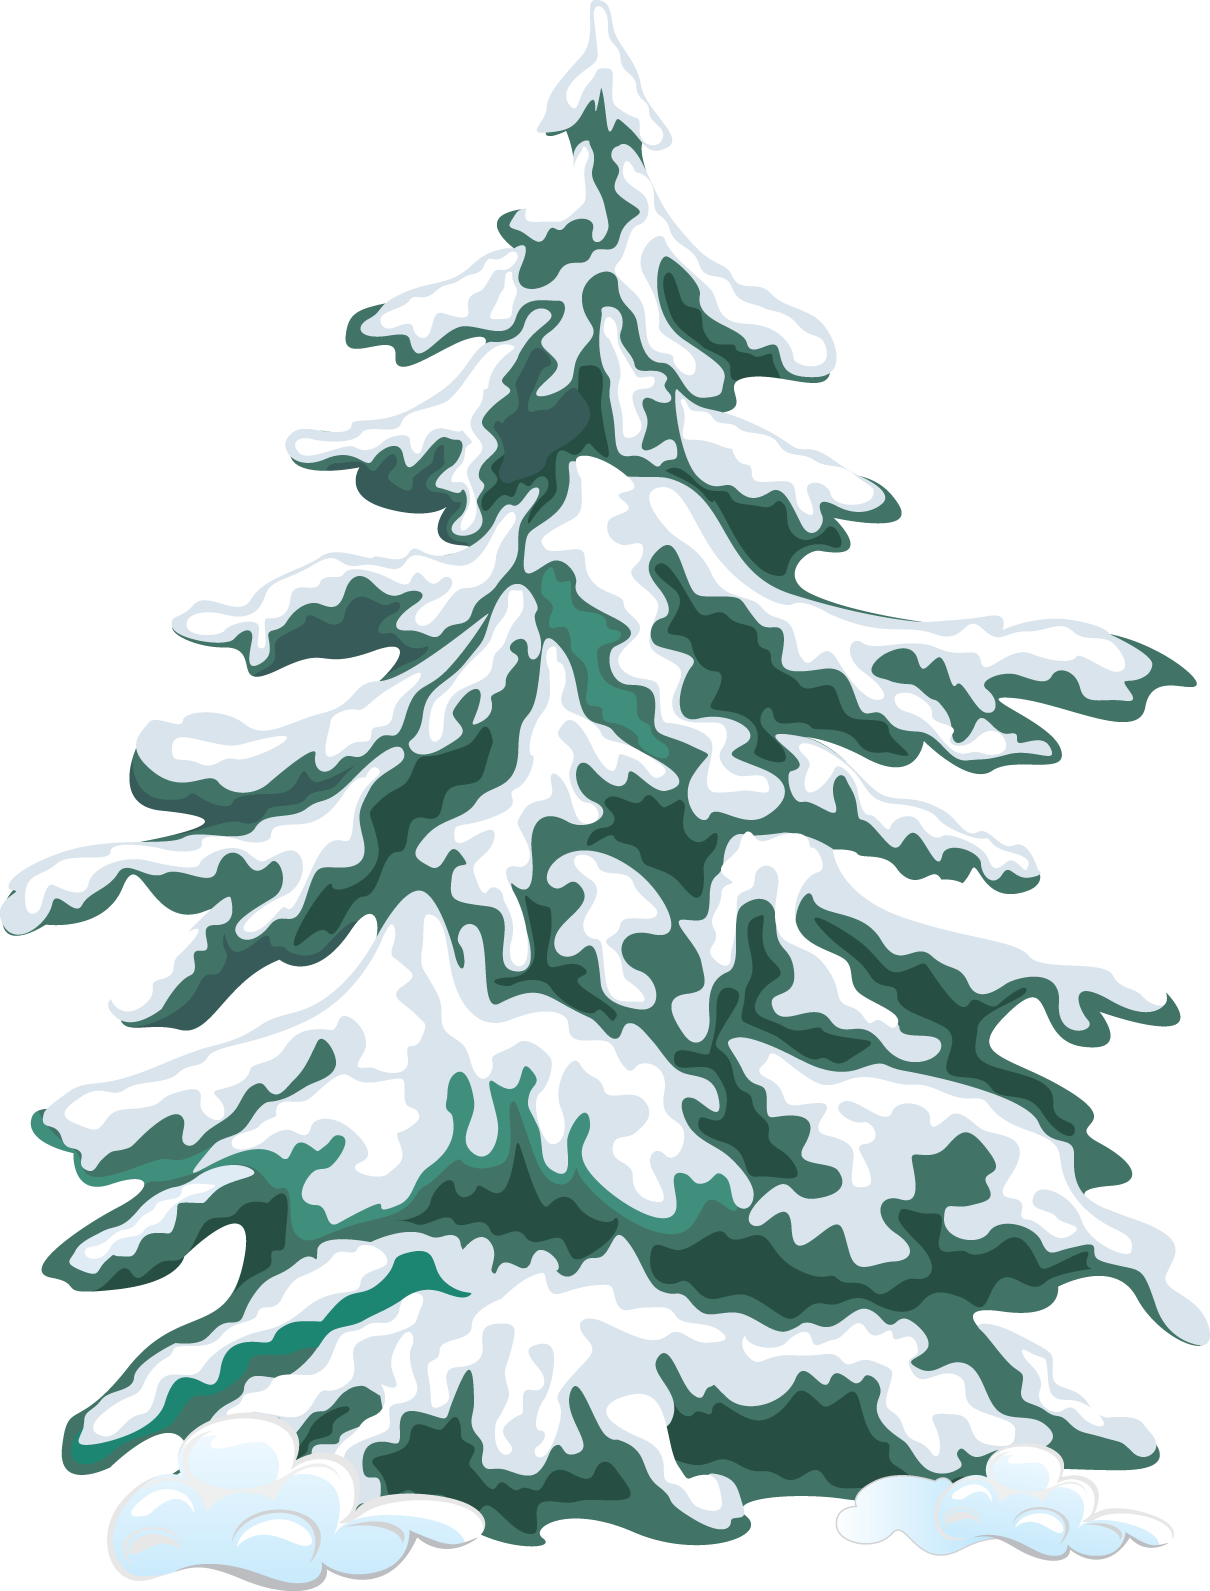 Web Development Winter Trees Christmas Tree Clipart Snow Illustration